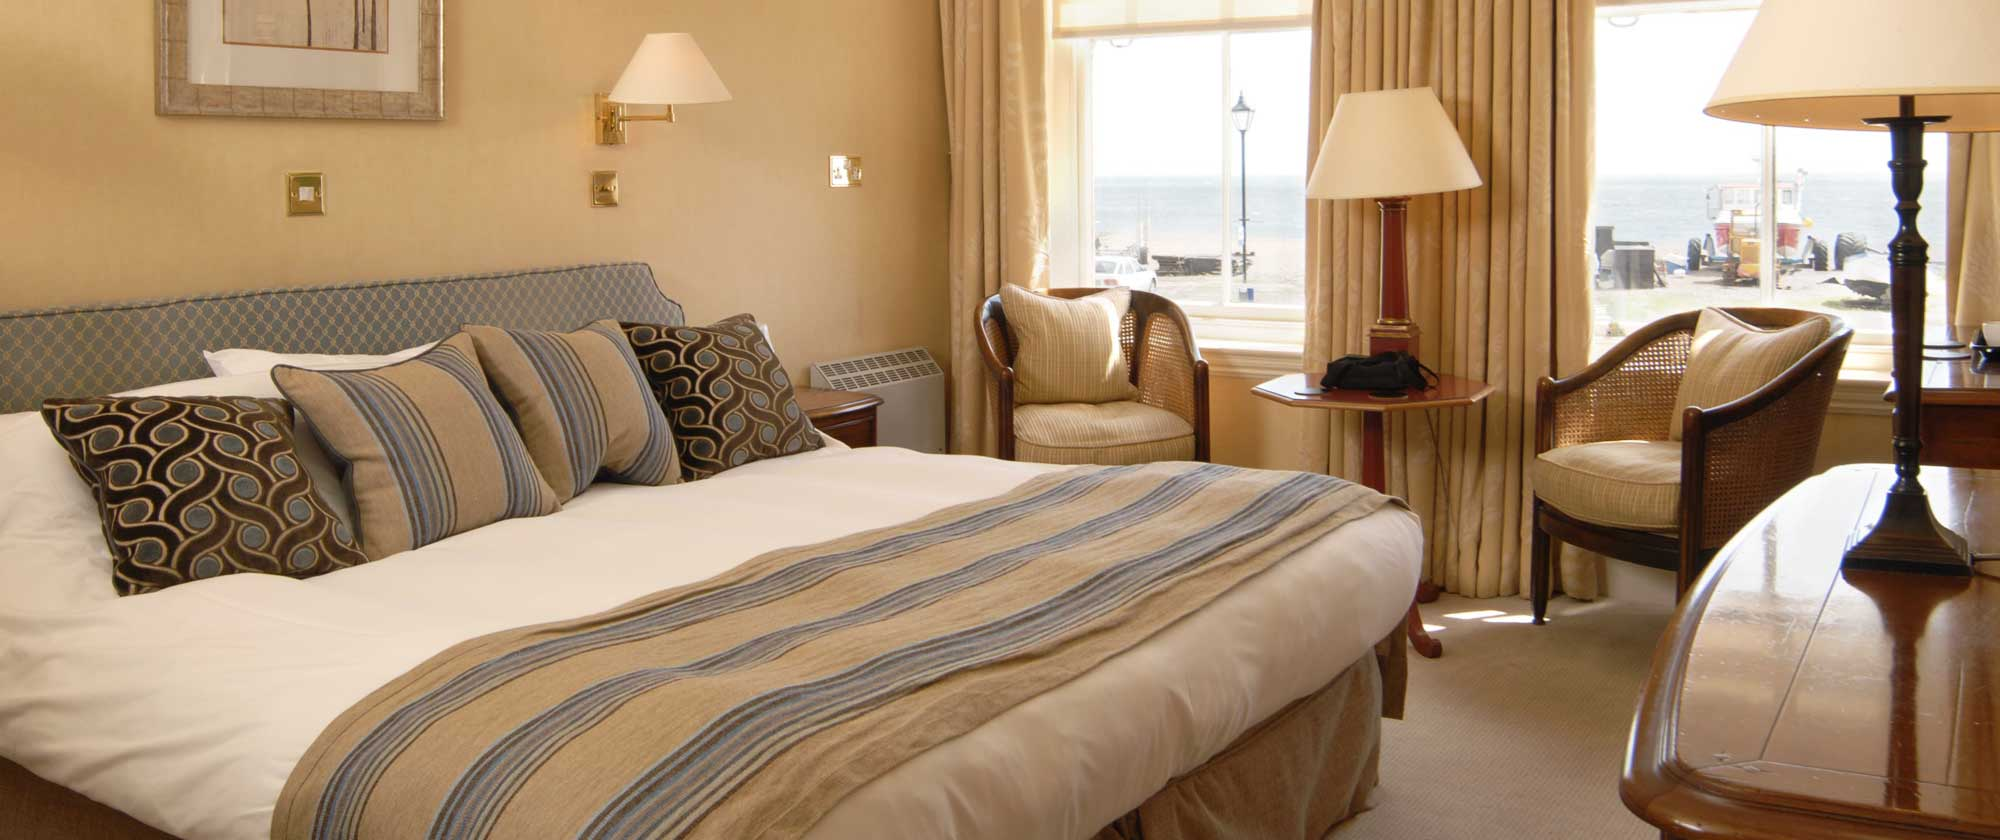 Bedrooms at The Wentworth Hotel in Aldeburgh